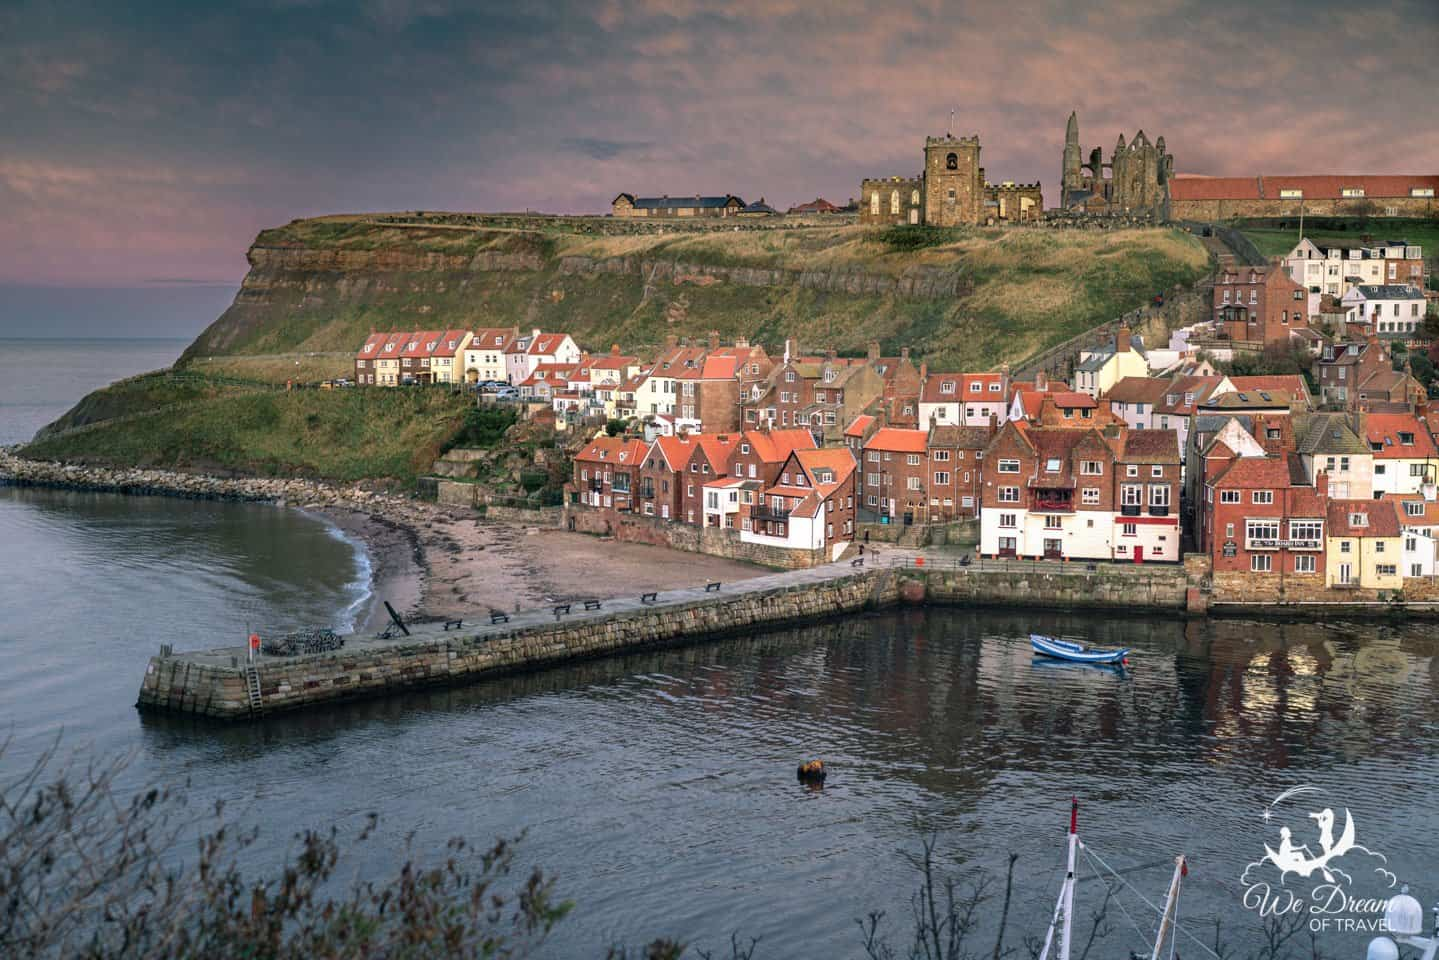 Sunset over St Mary's Church, Whitby Abbey and Whitby Harbour.